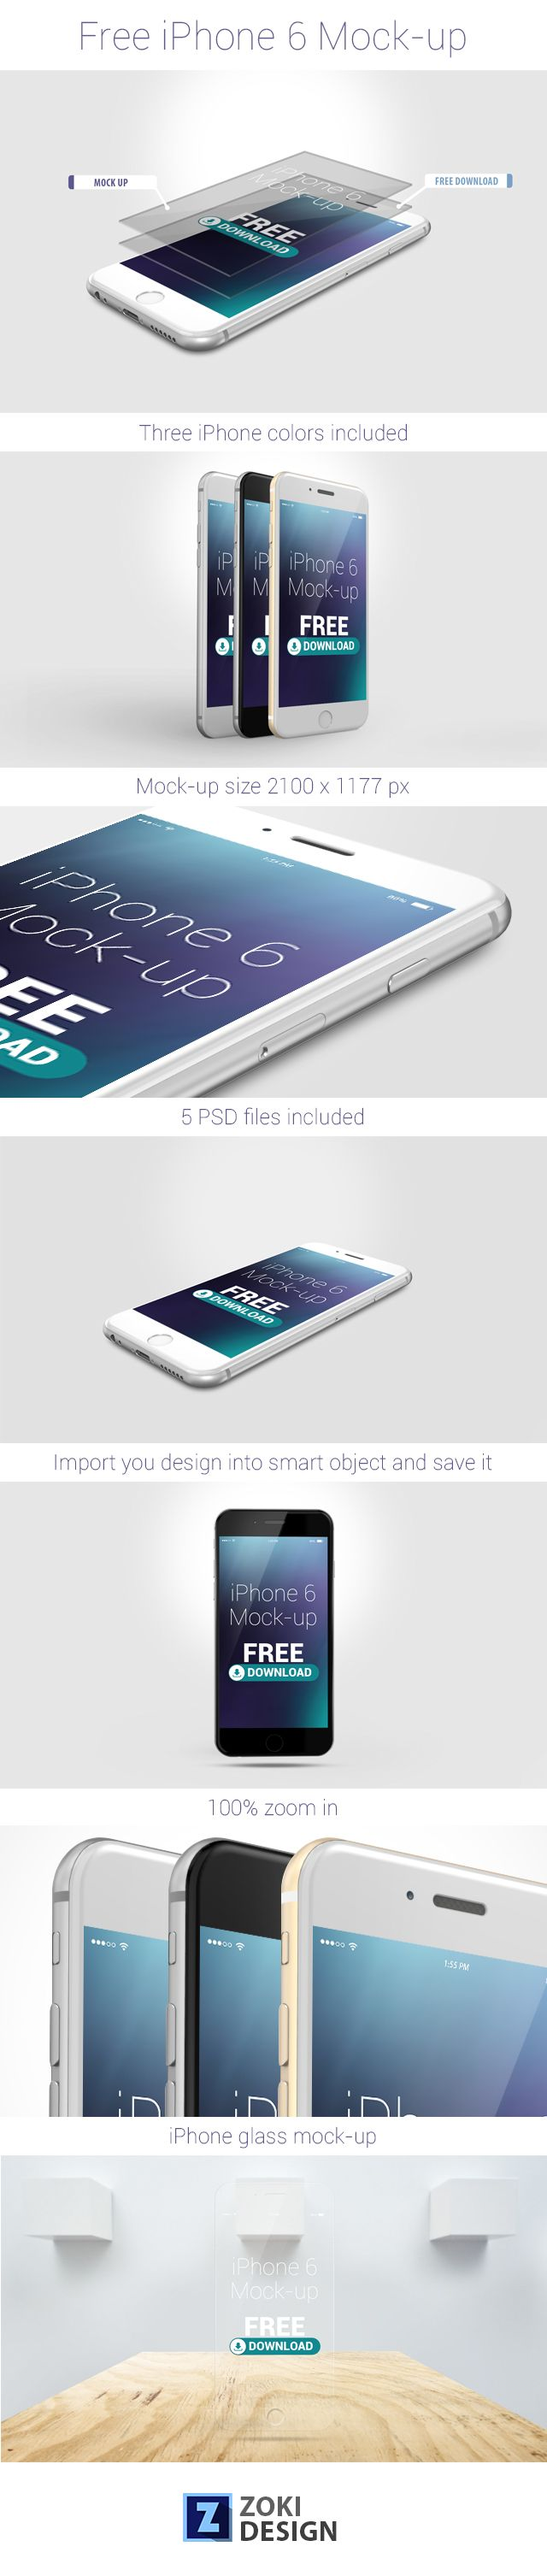 Free iPhone 6 Mock-Up on Behance